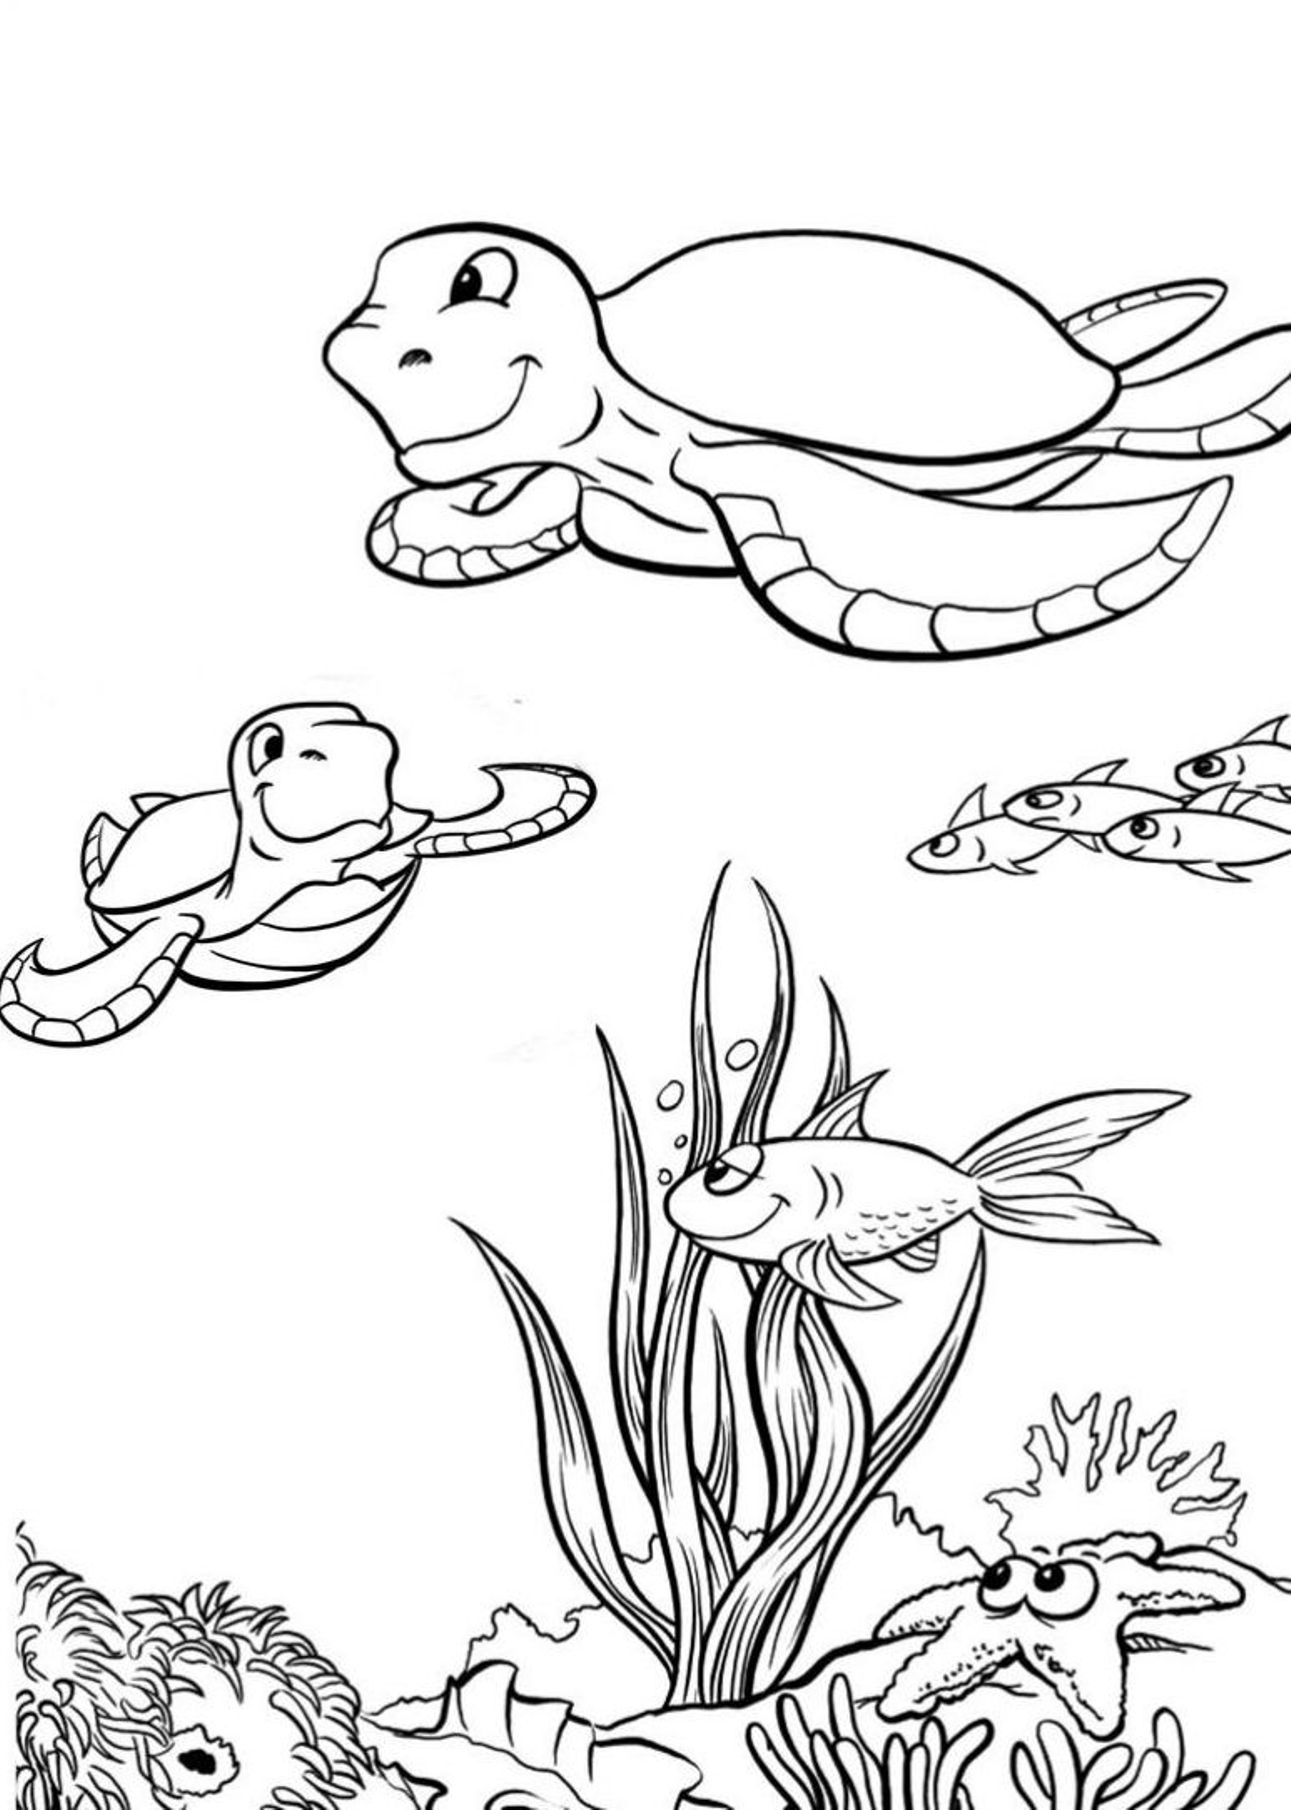 Sea turtle coloring pages to download